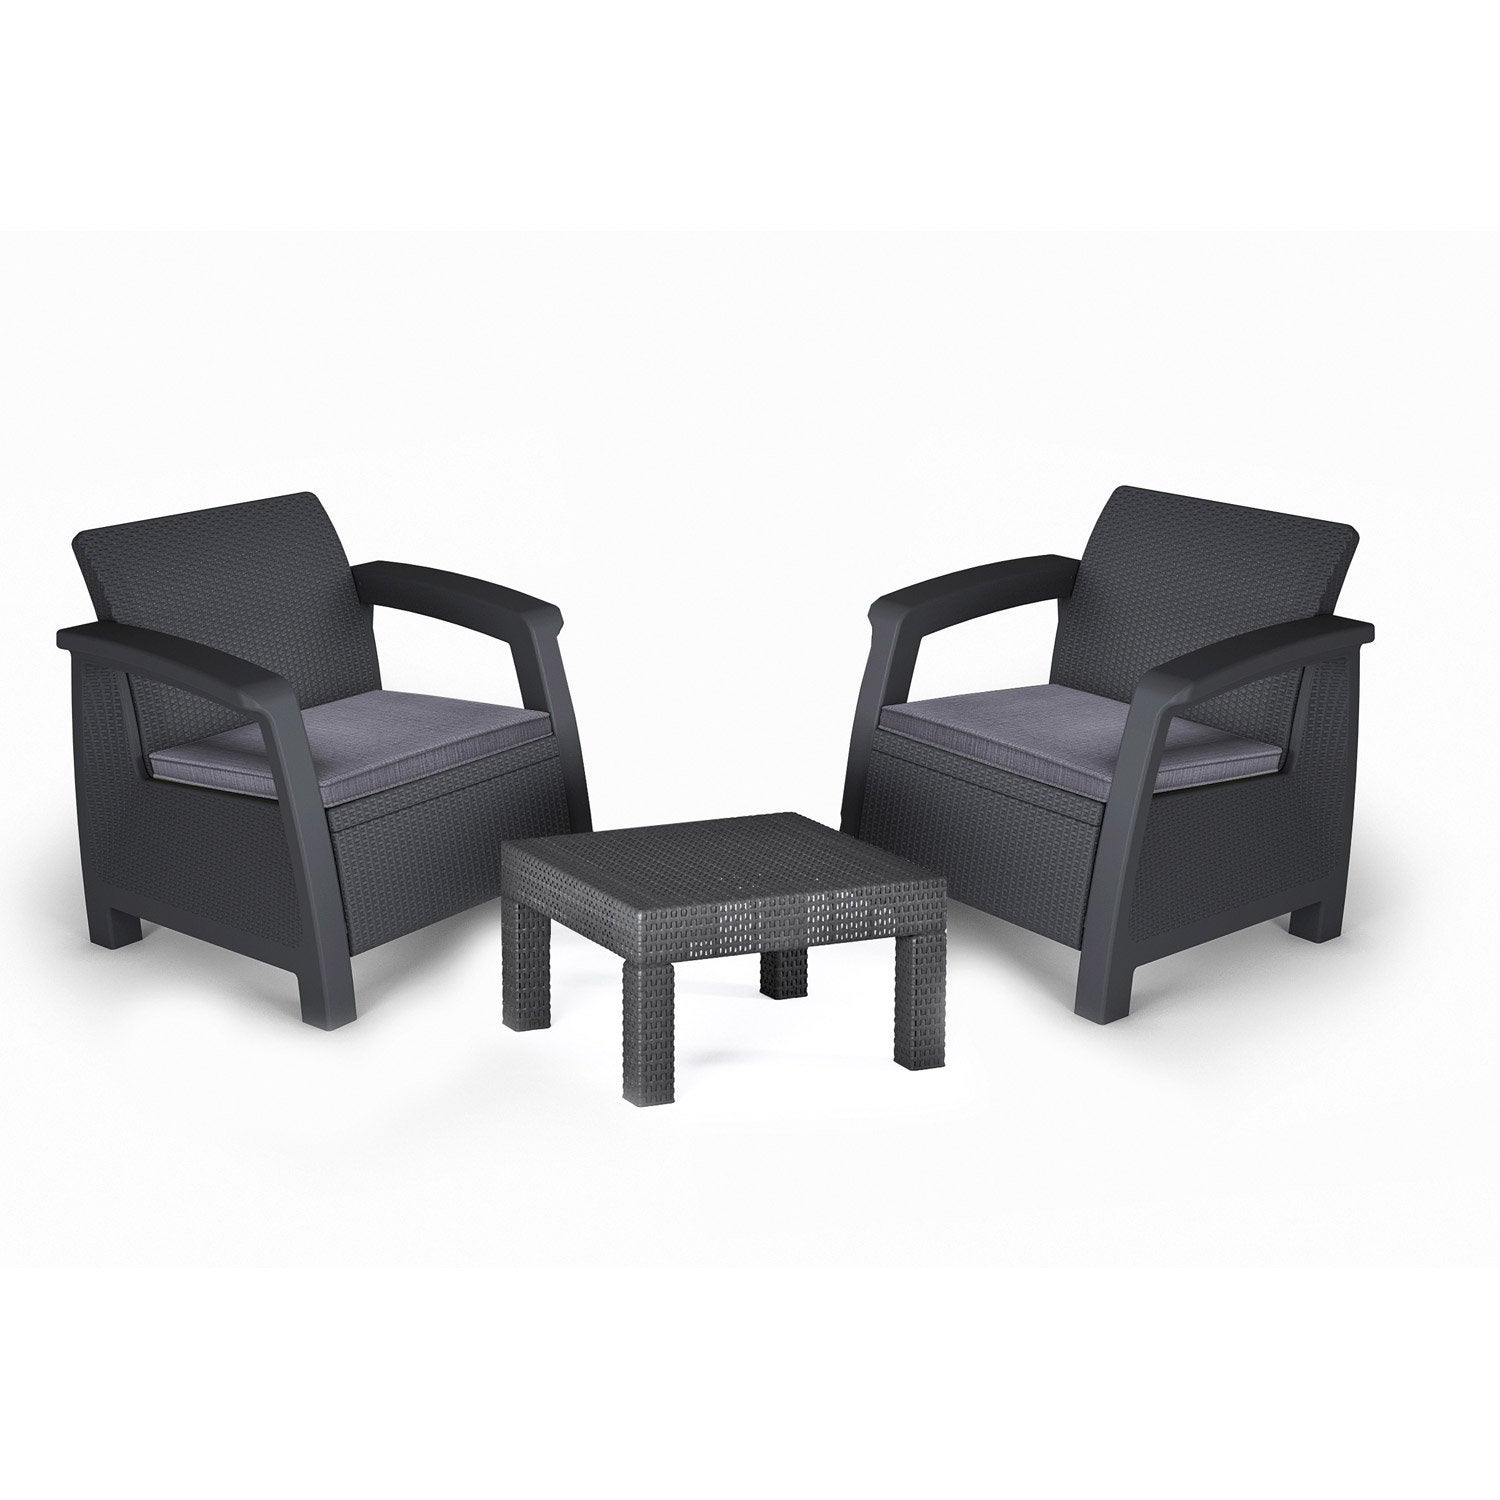 Salon de jardin bahamas r sine inject e anthracite table 2 fauteuils leroy - Salon jardin 2 personnes ...